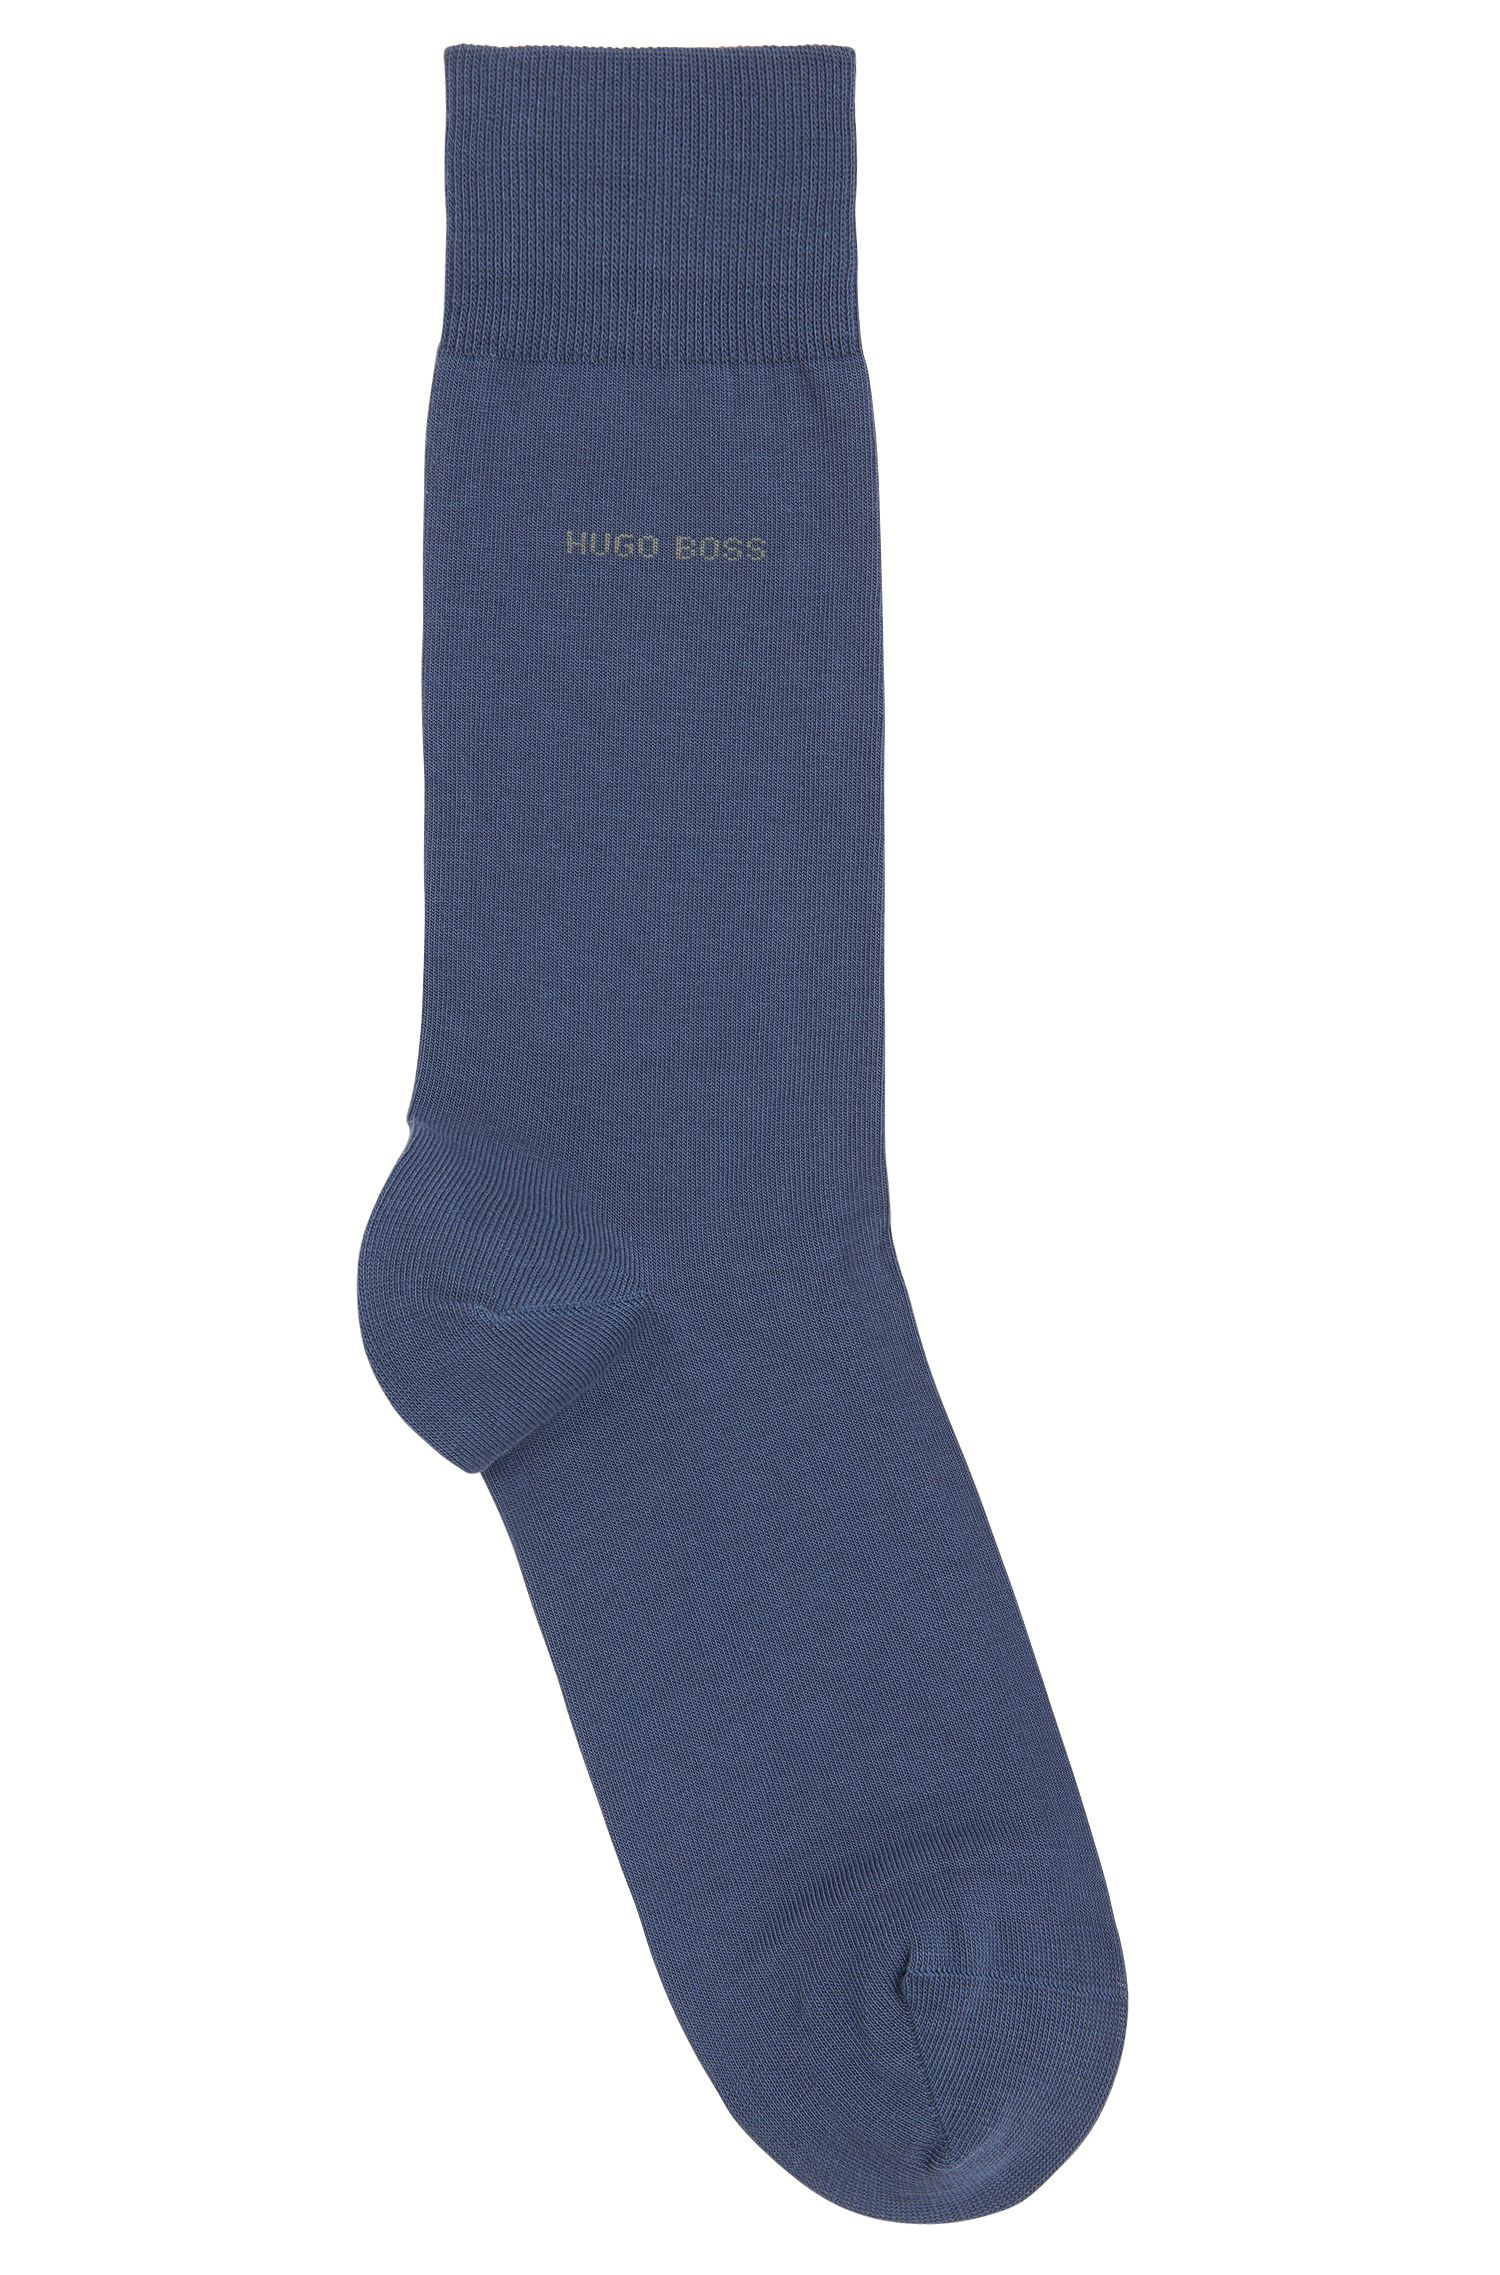 Regular-length socks in combed cotton with stretch